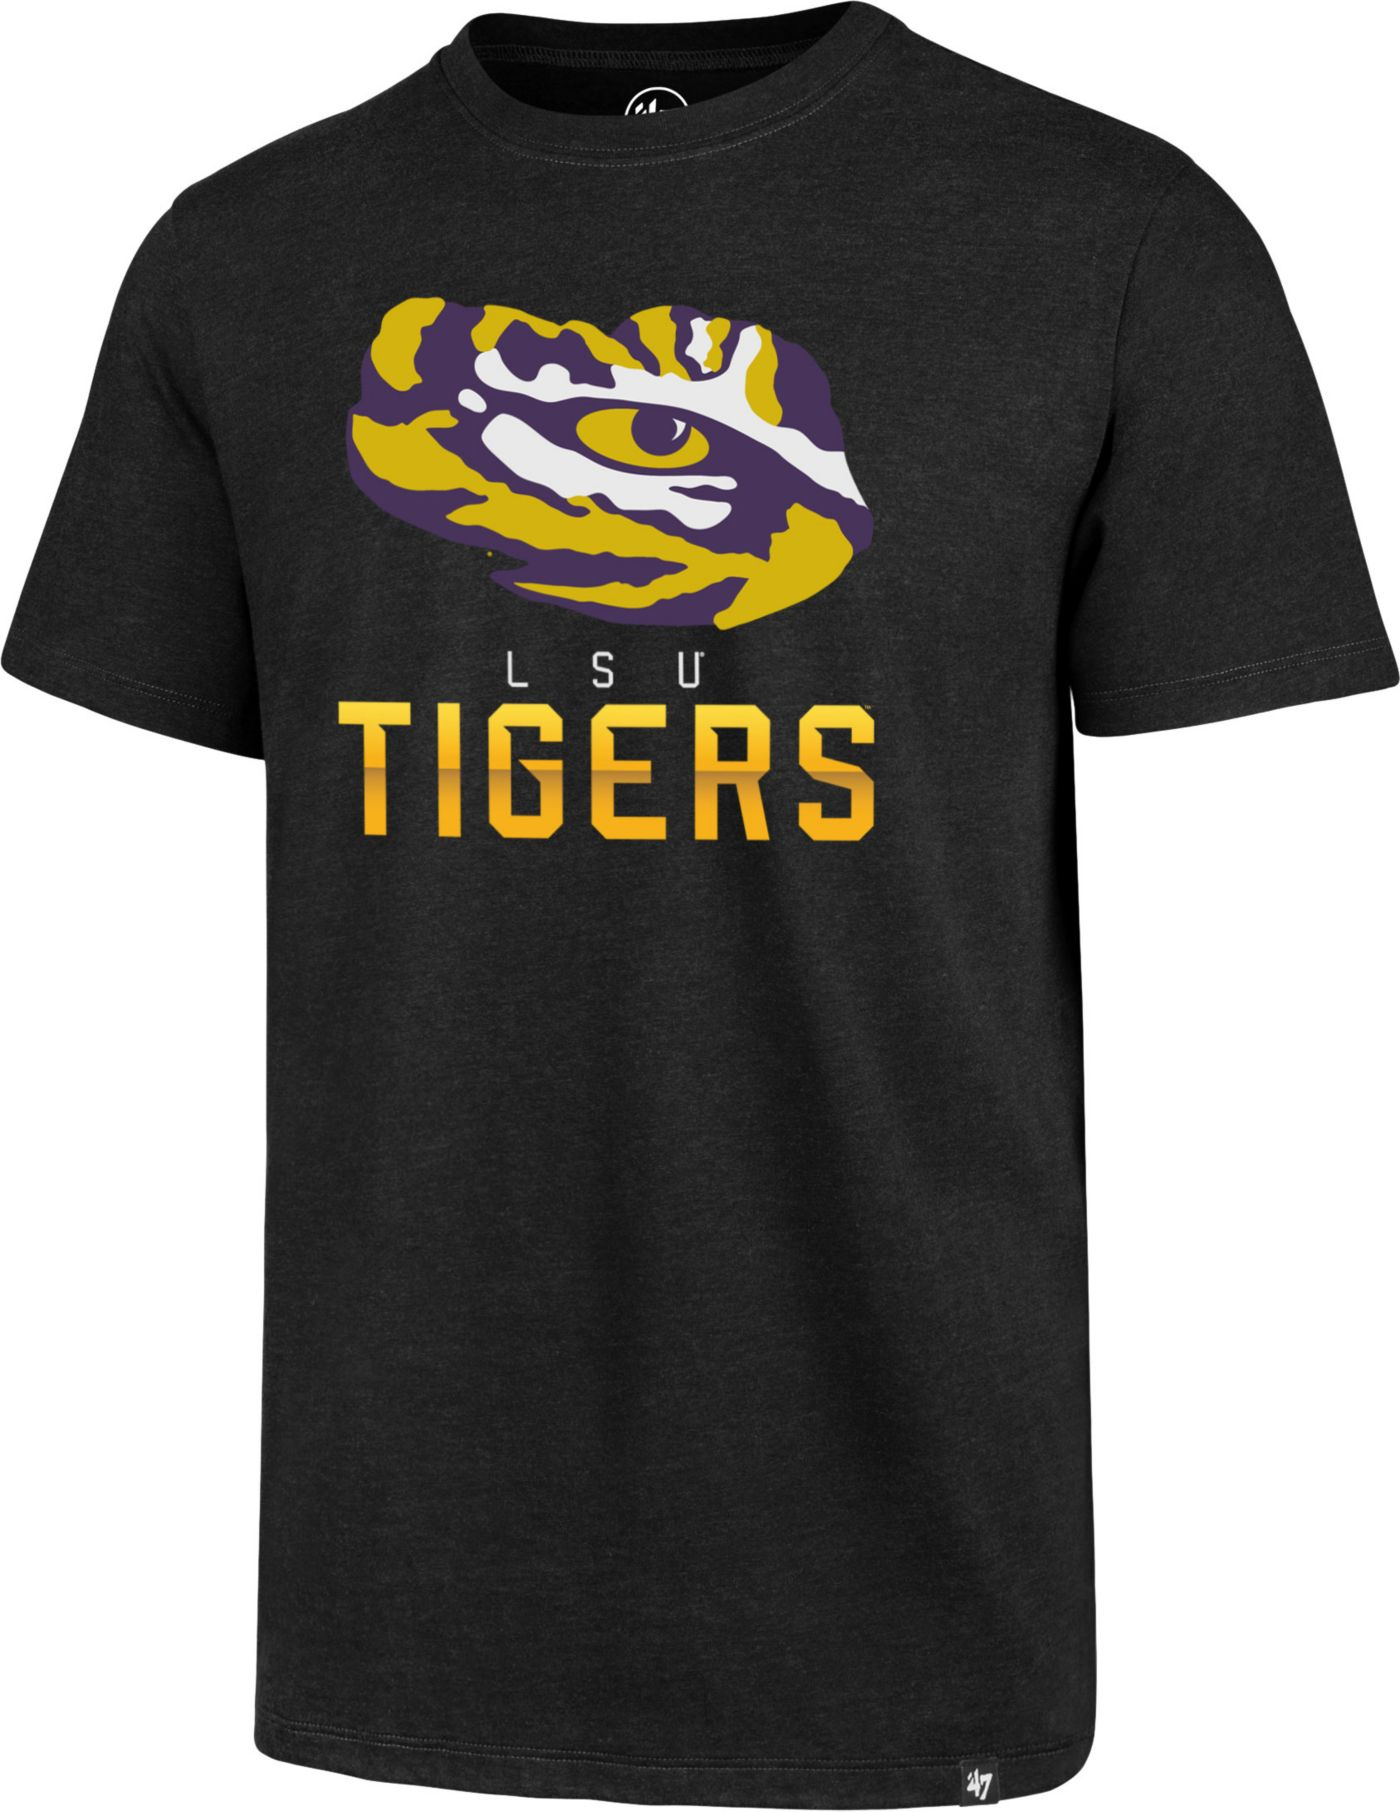 '47 Men's LSU Tigers Hype Club Black T-Shirt